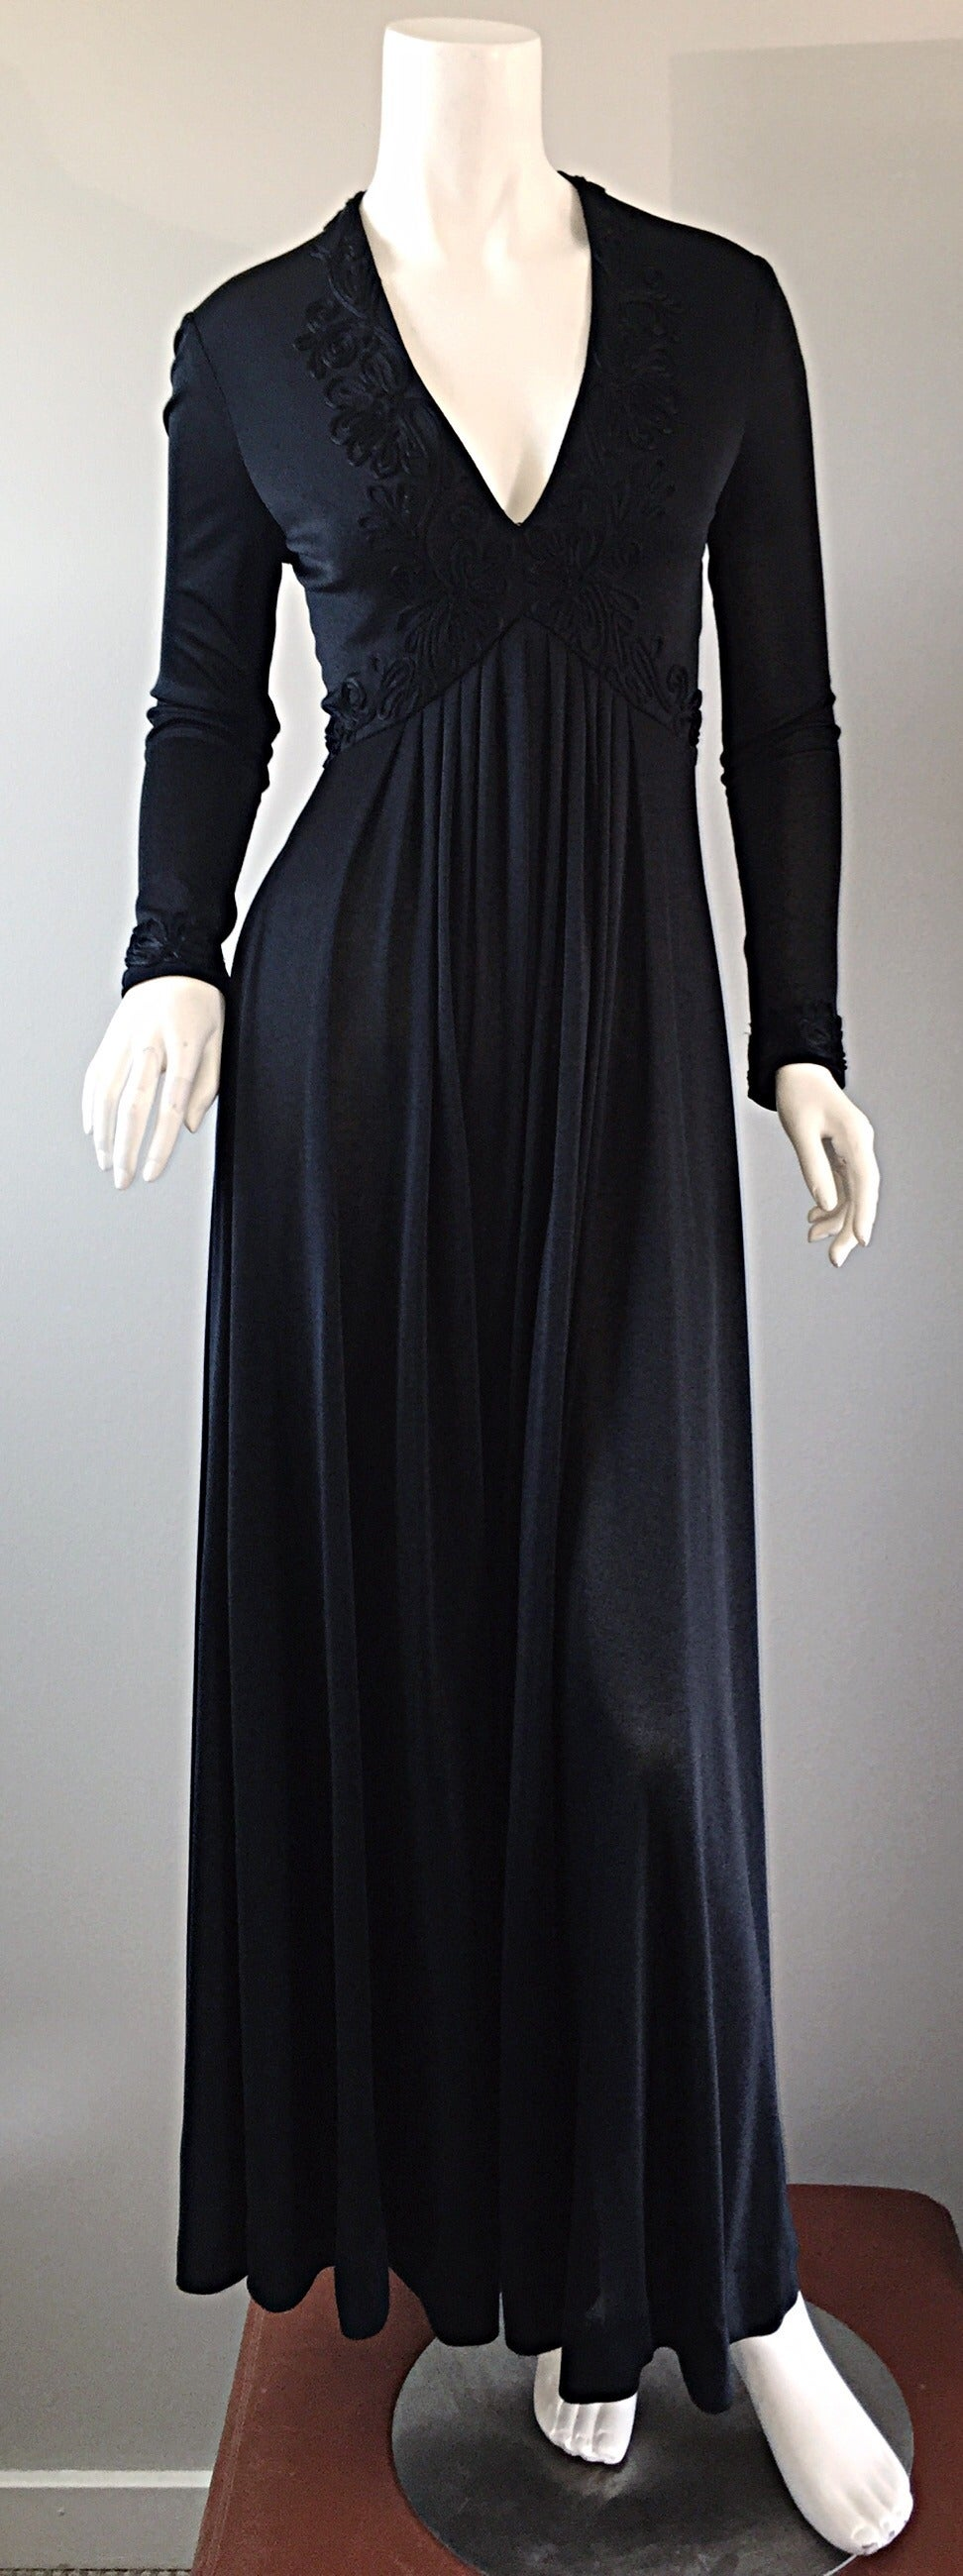 Vintage Jack Bryan Black Jersey Maxi Dress w/ Intricate Embroidery 1970s 70s 8